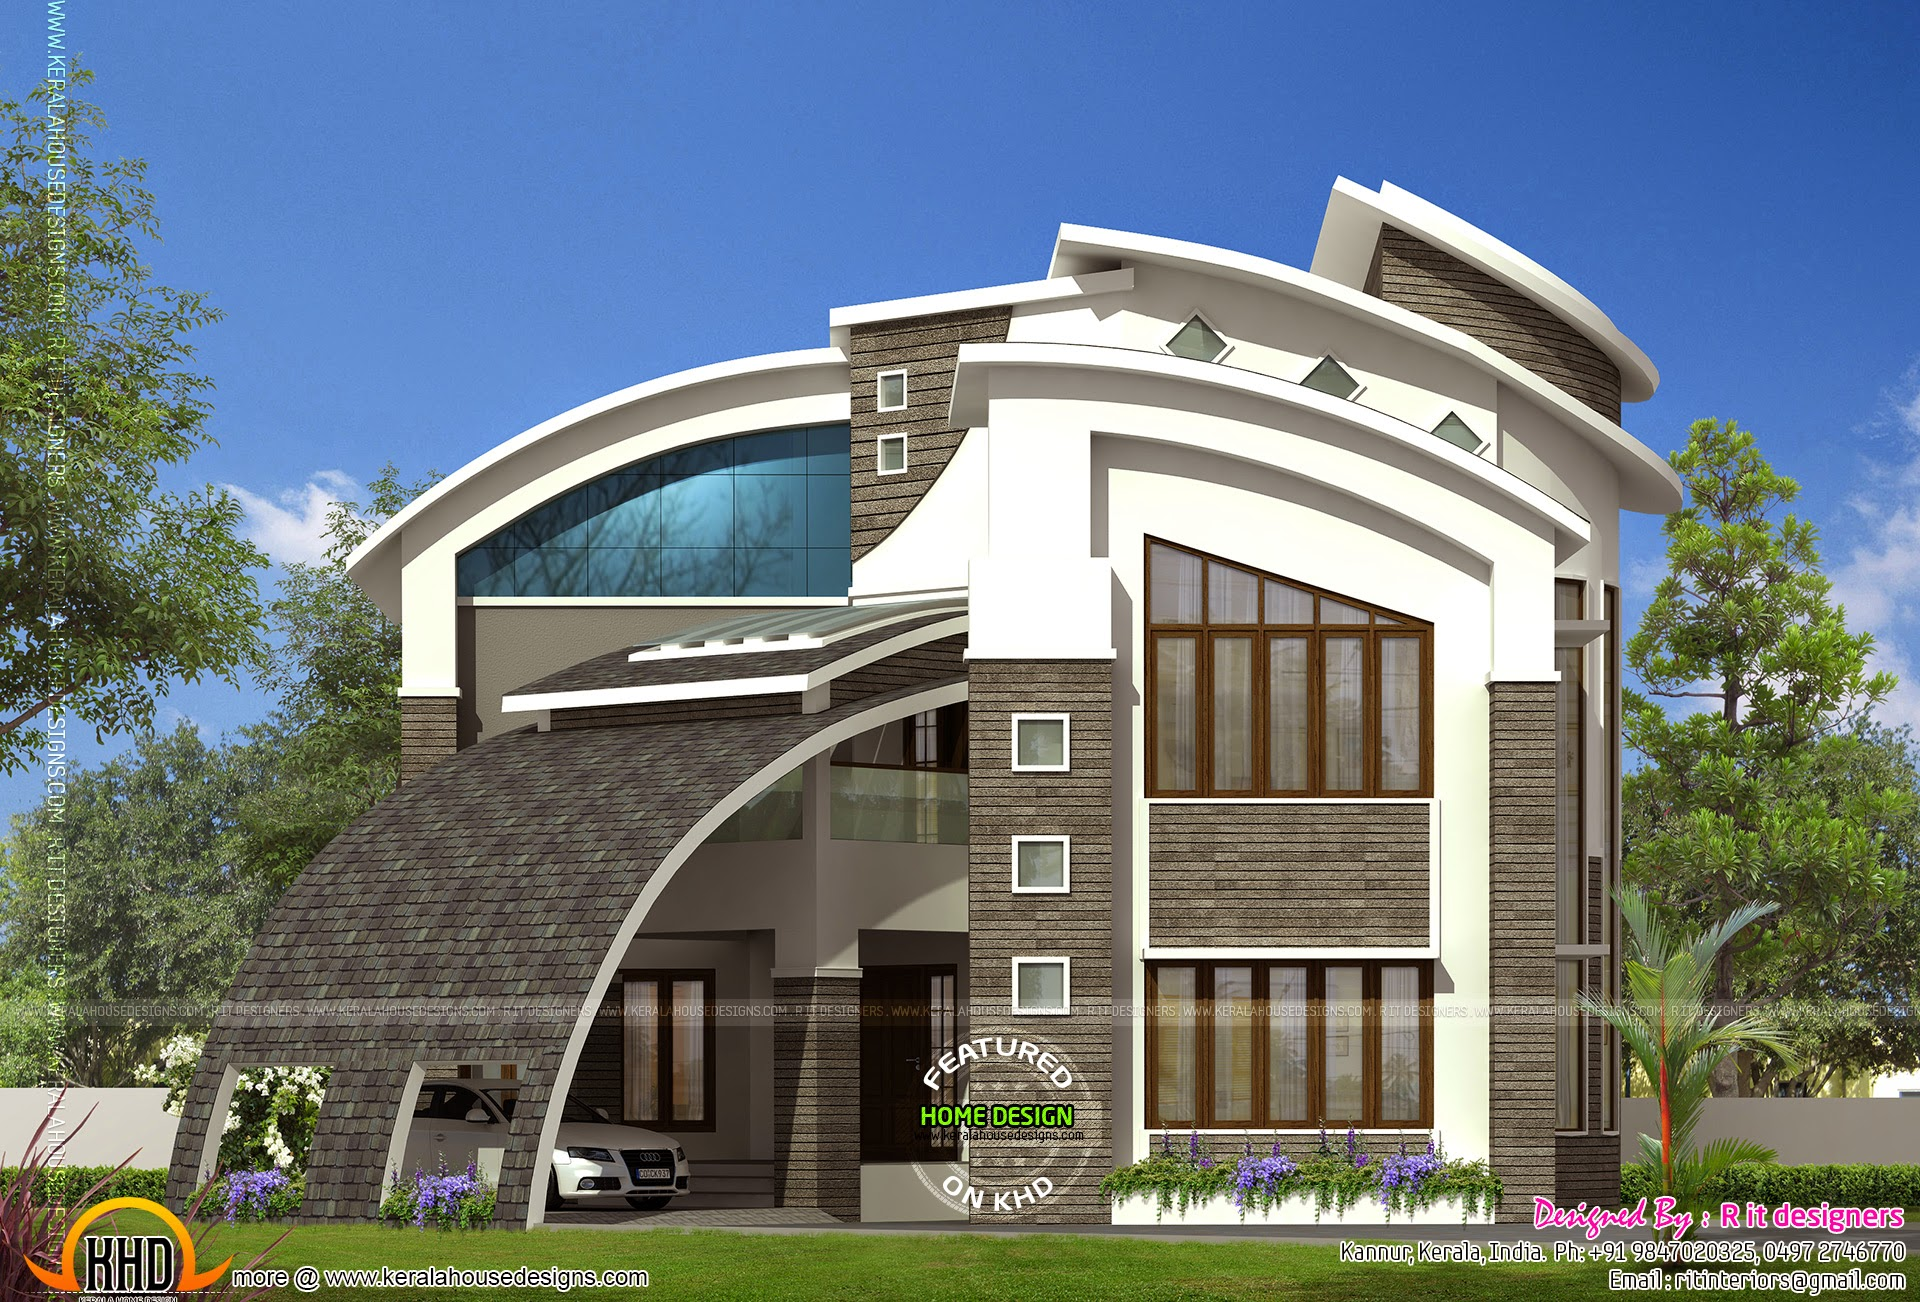 Most modern contemporary house design kerala home design and floor plans - Contemporary home design ...